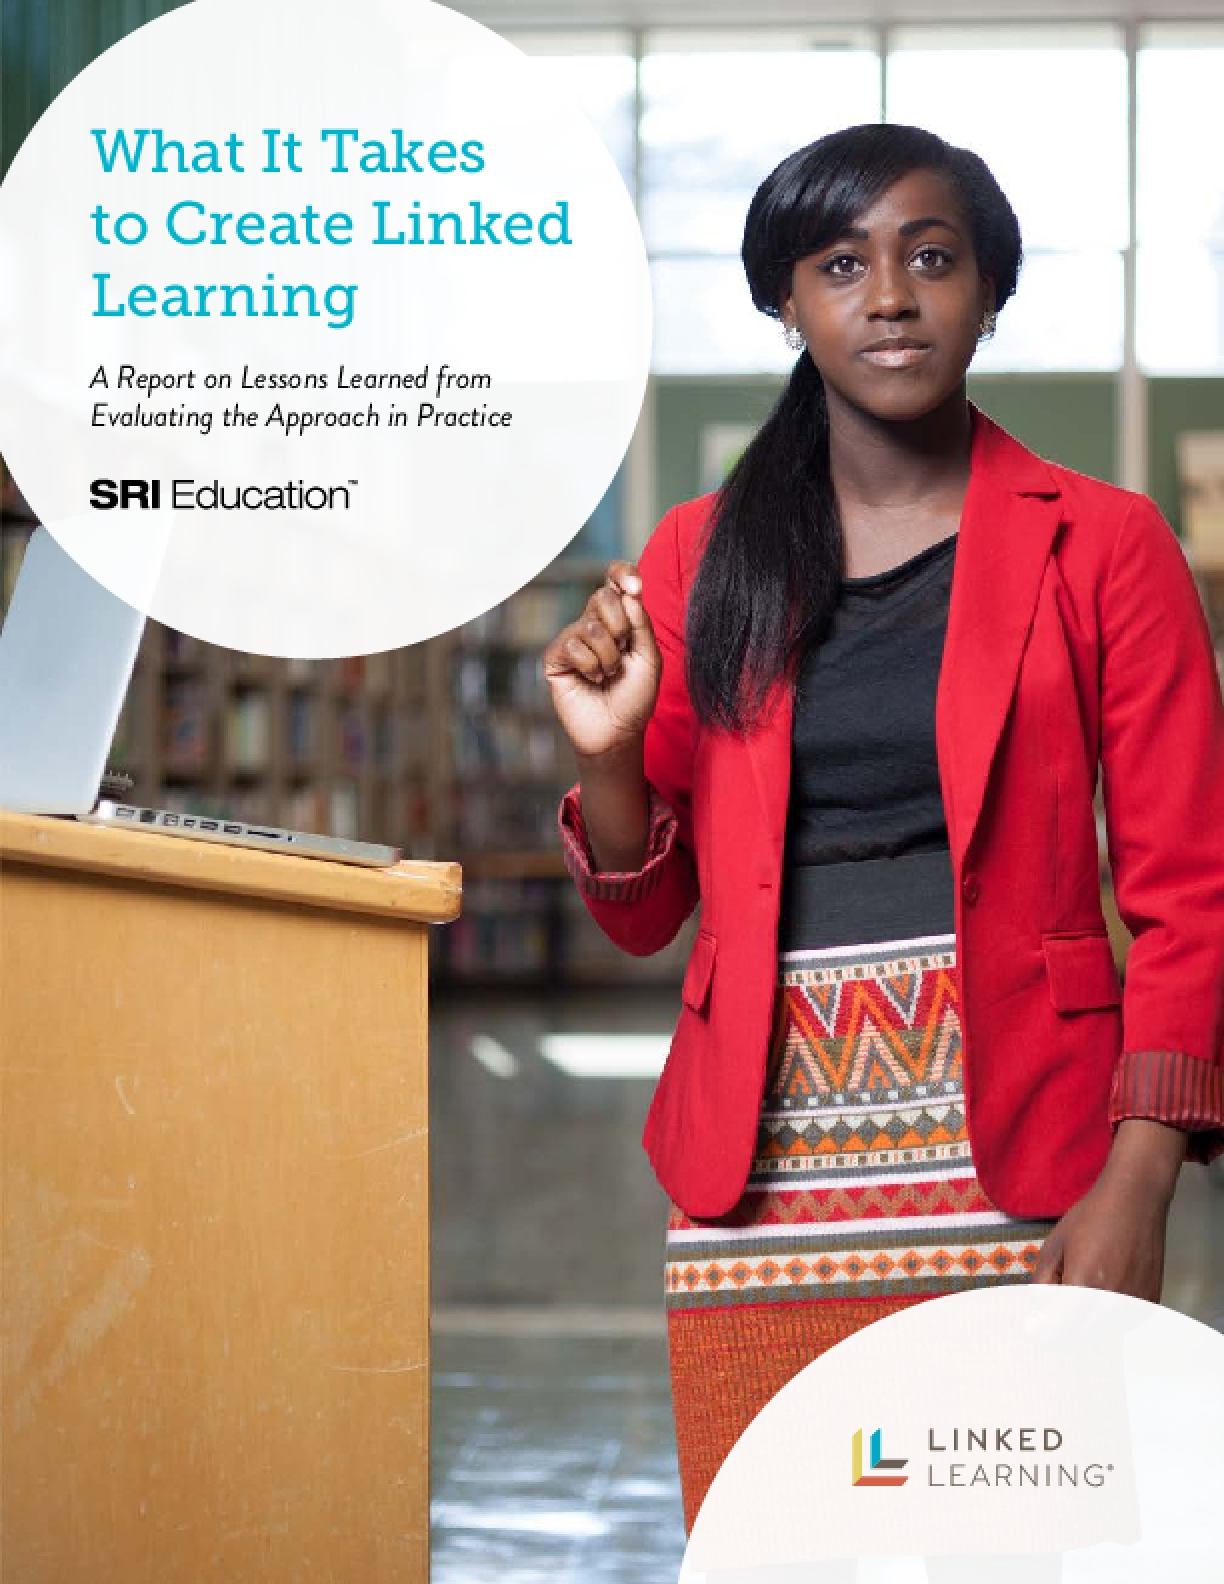 What It Takes to Create Linked Learning